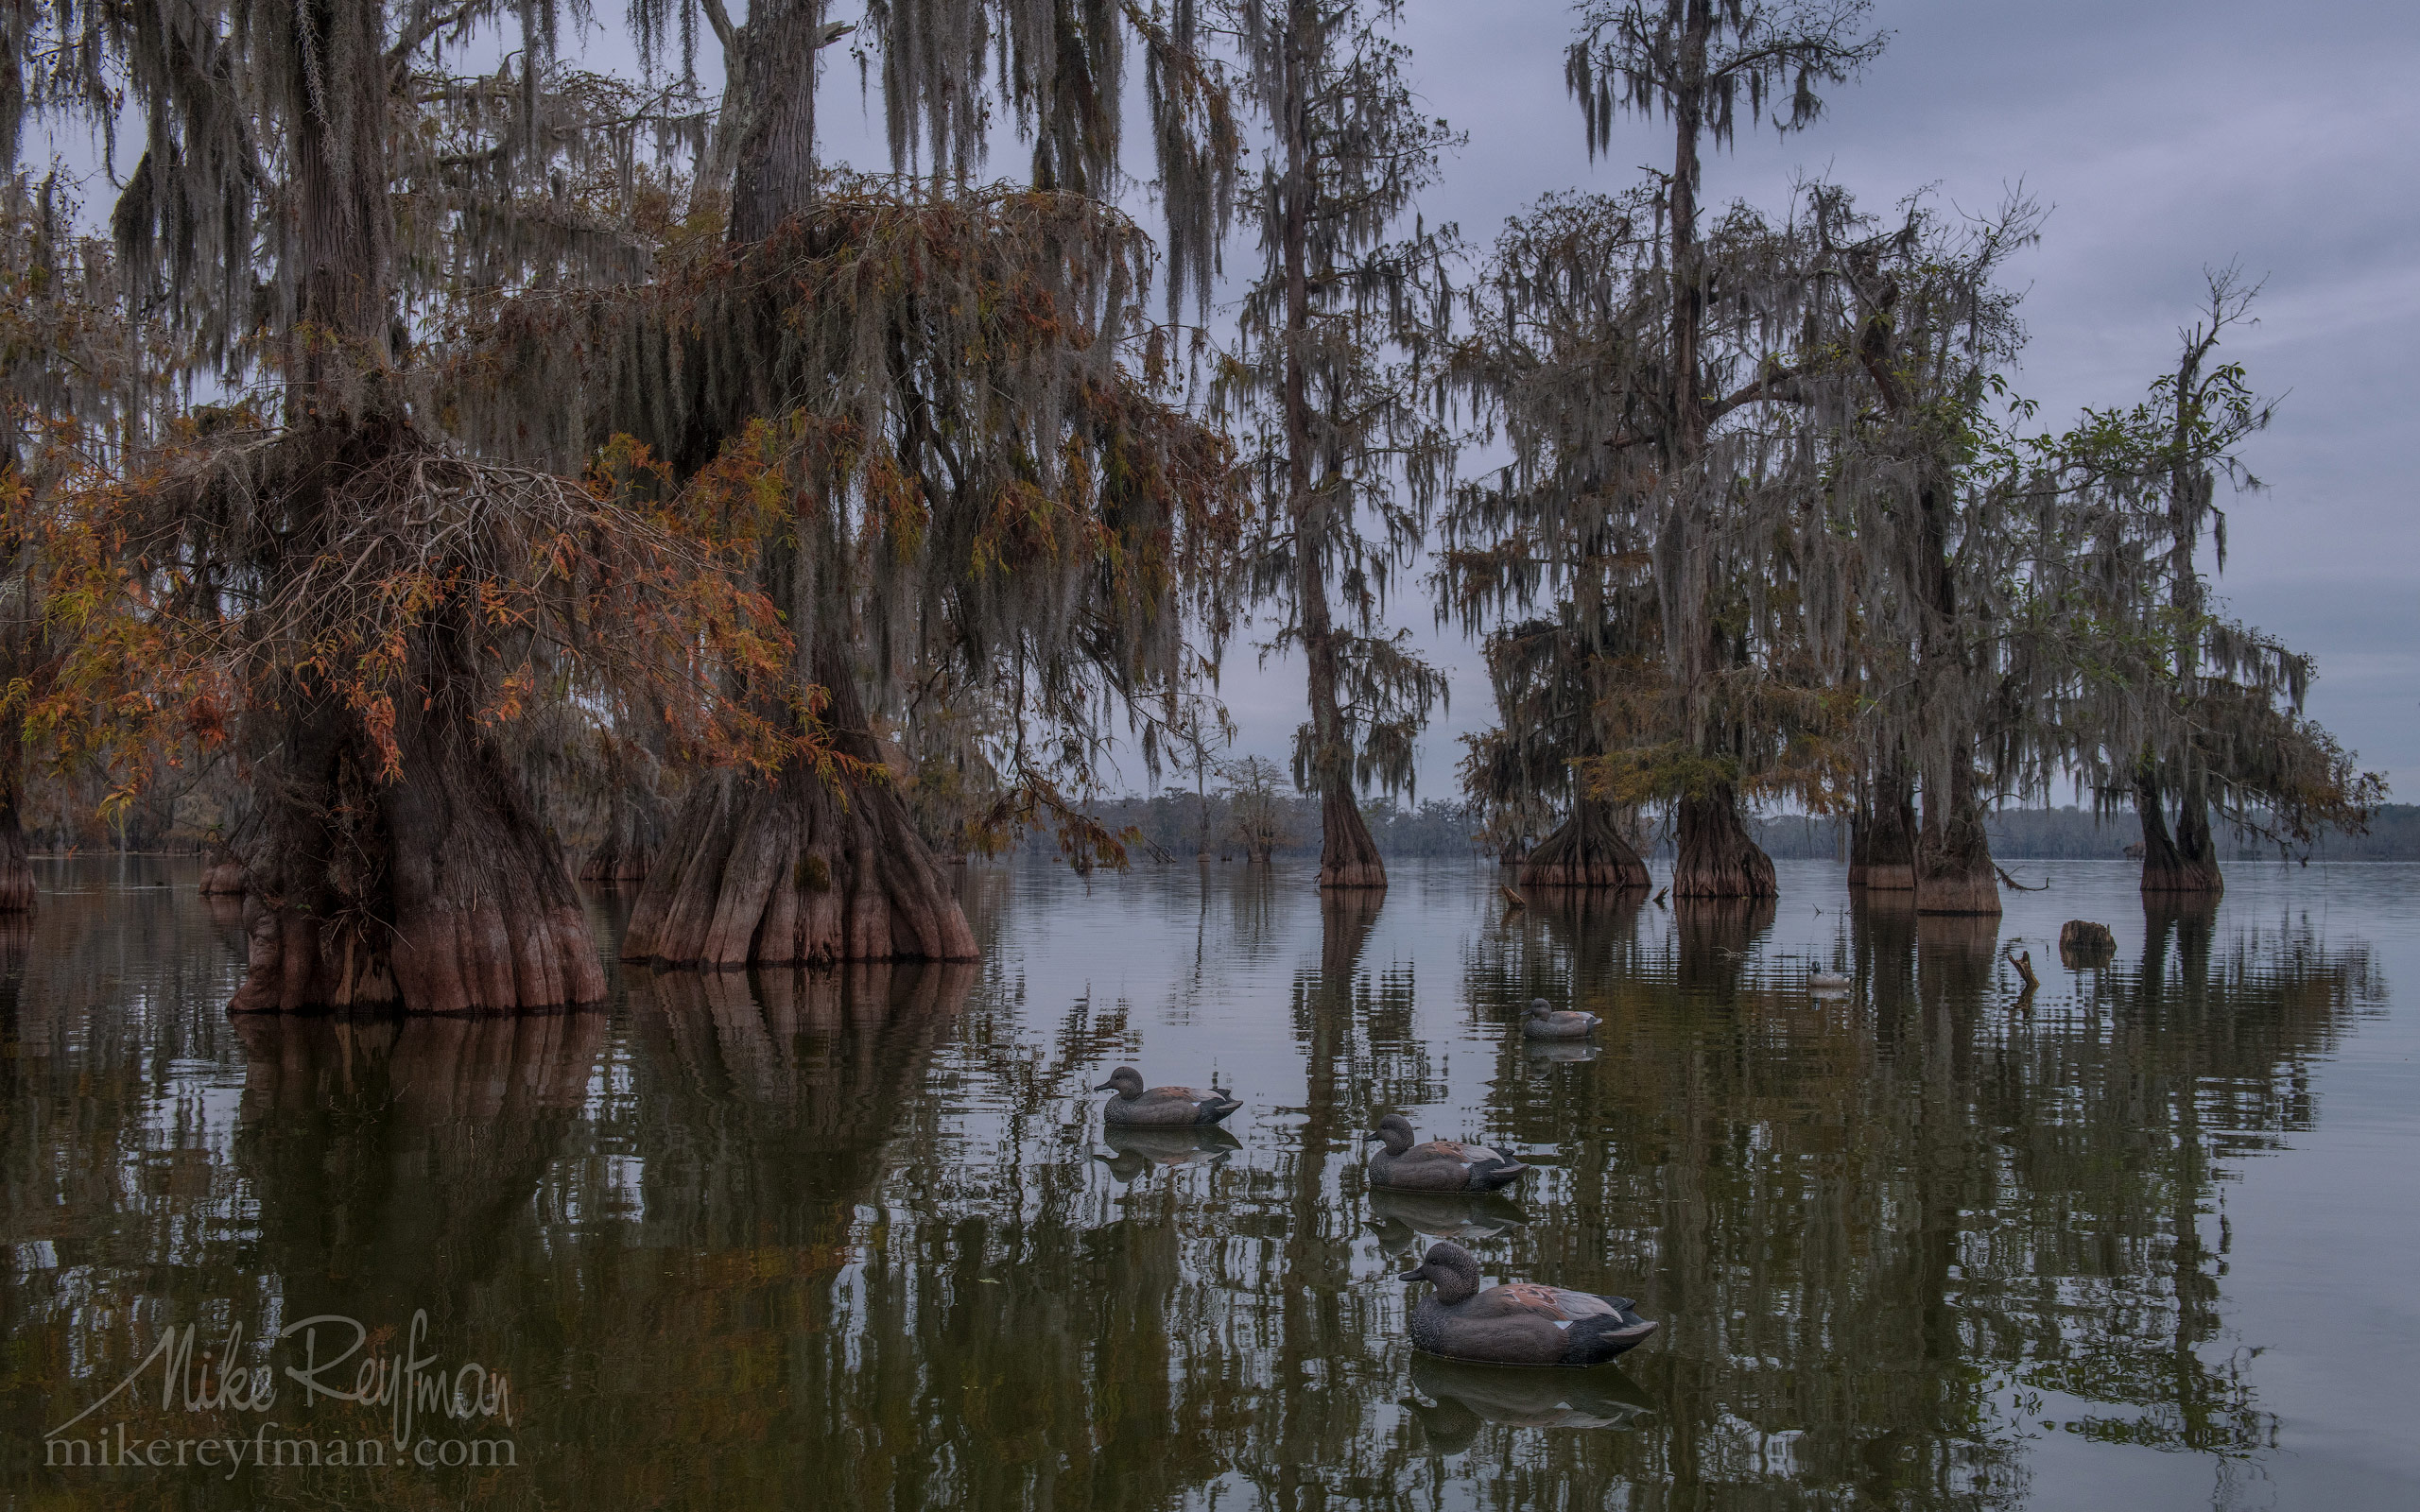 Duck decoys and Bald Cypress Trees. Lake Martin, Louisiana, US 091-LT1-50A2540.jpg - Bold Cypress and Tupelo Trees in the swamps of Atchafalaya River Basin. Caddo, Martin and Fousse Lakes. Texas/Louisiana, USA. - Mike Reyfman Photography